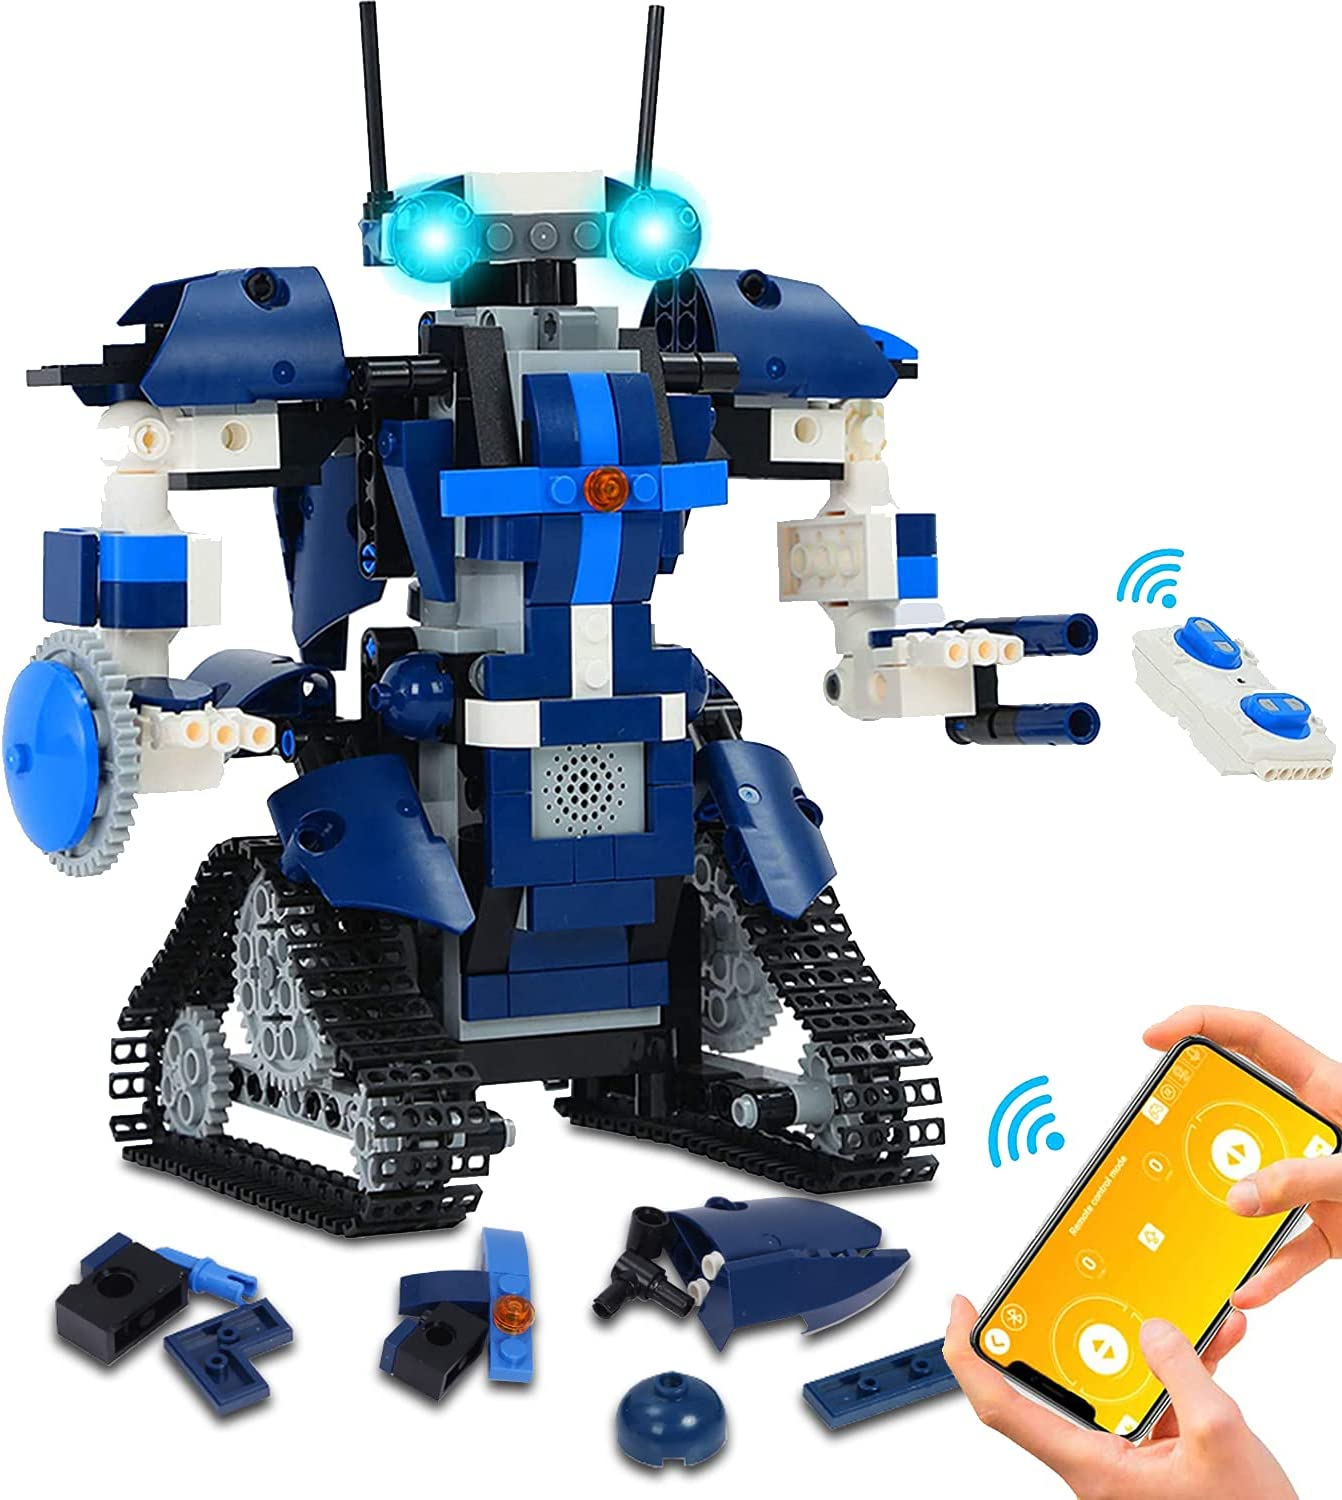 OKREVIEW Robot Building Kit for - STEM Kids RemoteAPP Controlle Chicago Super sale period limited Mall